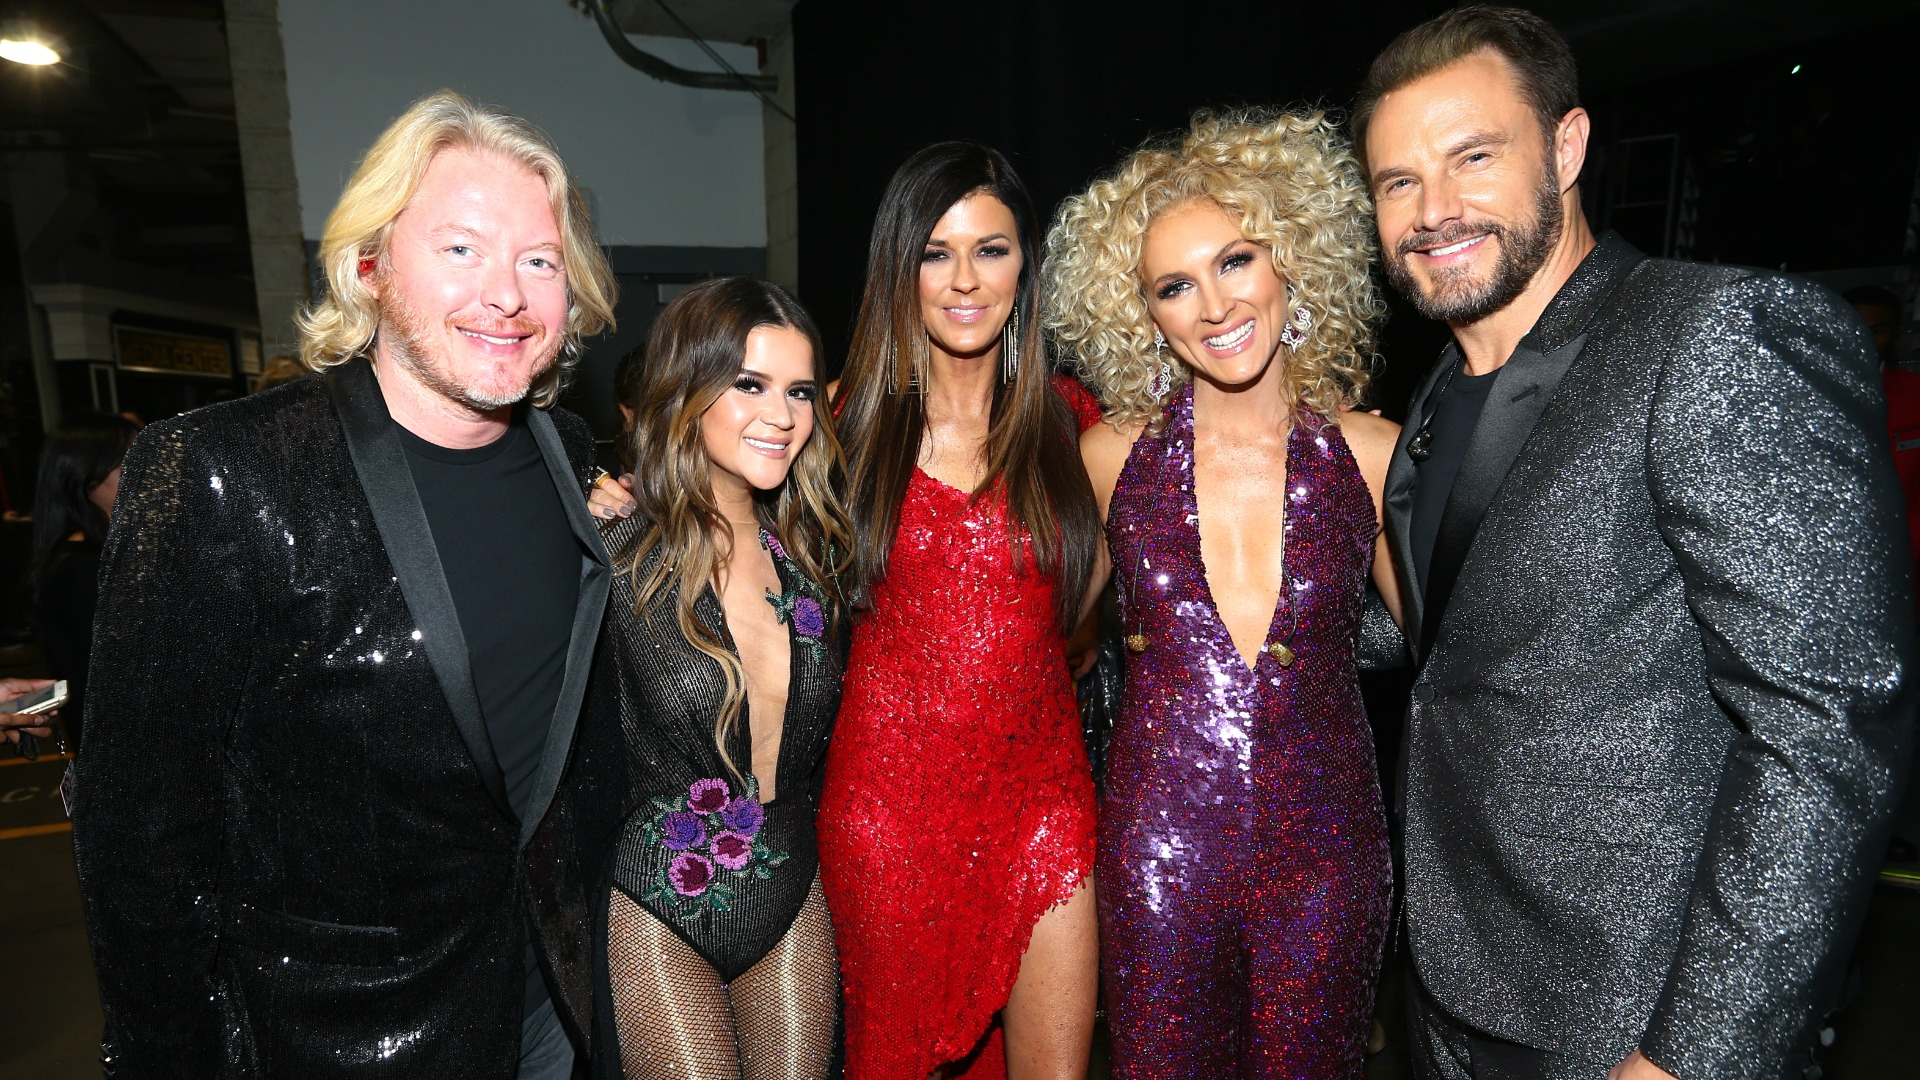 Little Big Town and Maren Morris offer up a whole lotta shimmer and sequins.